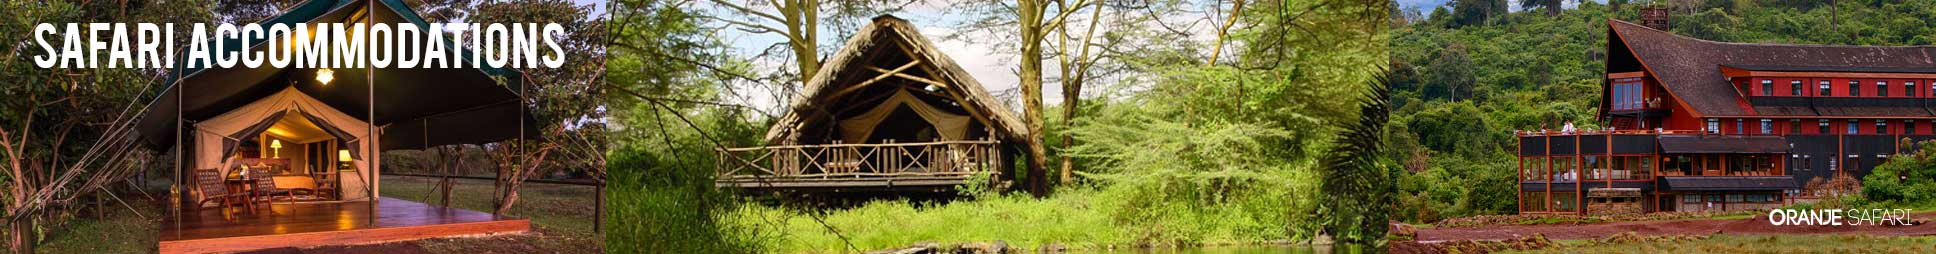 safari accomodations banner